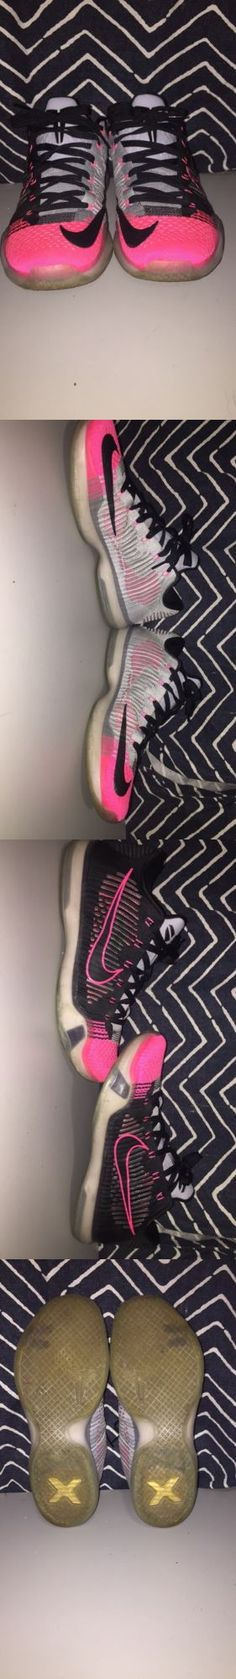 Basketball: Kobe 10 Elite Low Mambacurial Size 11 -> BUY IT NOW ONLY: $80 on eBay!